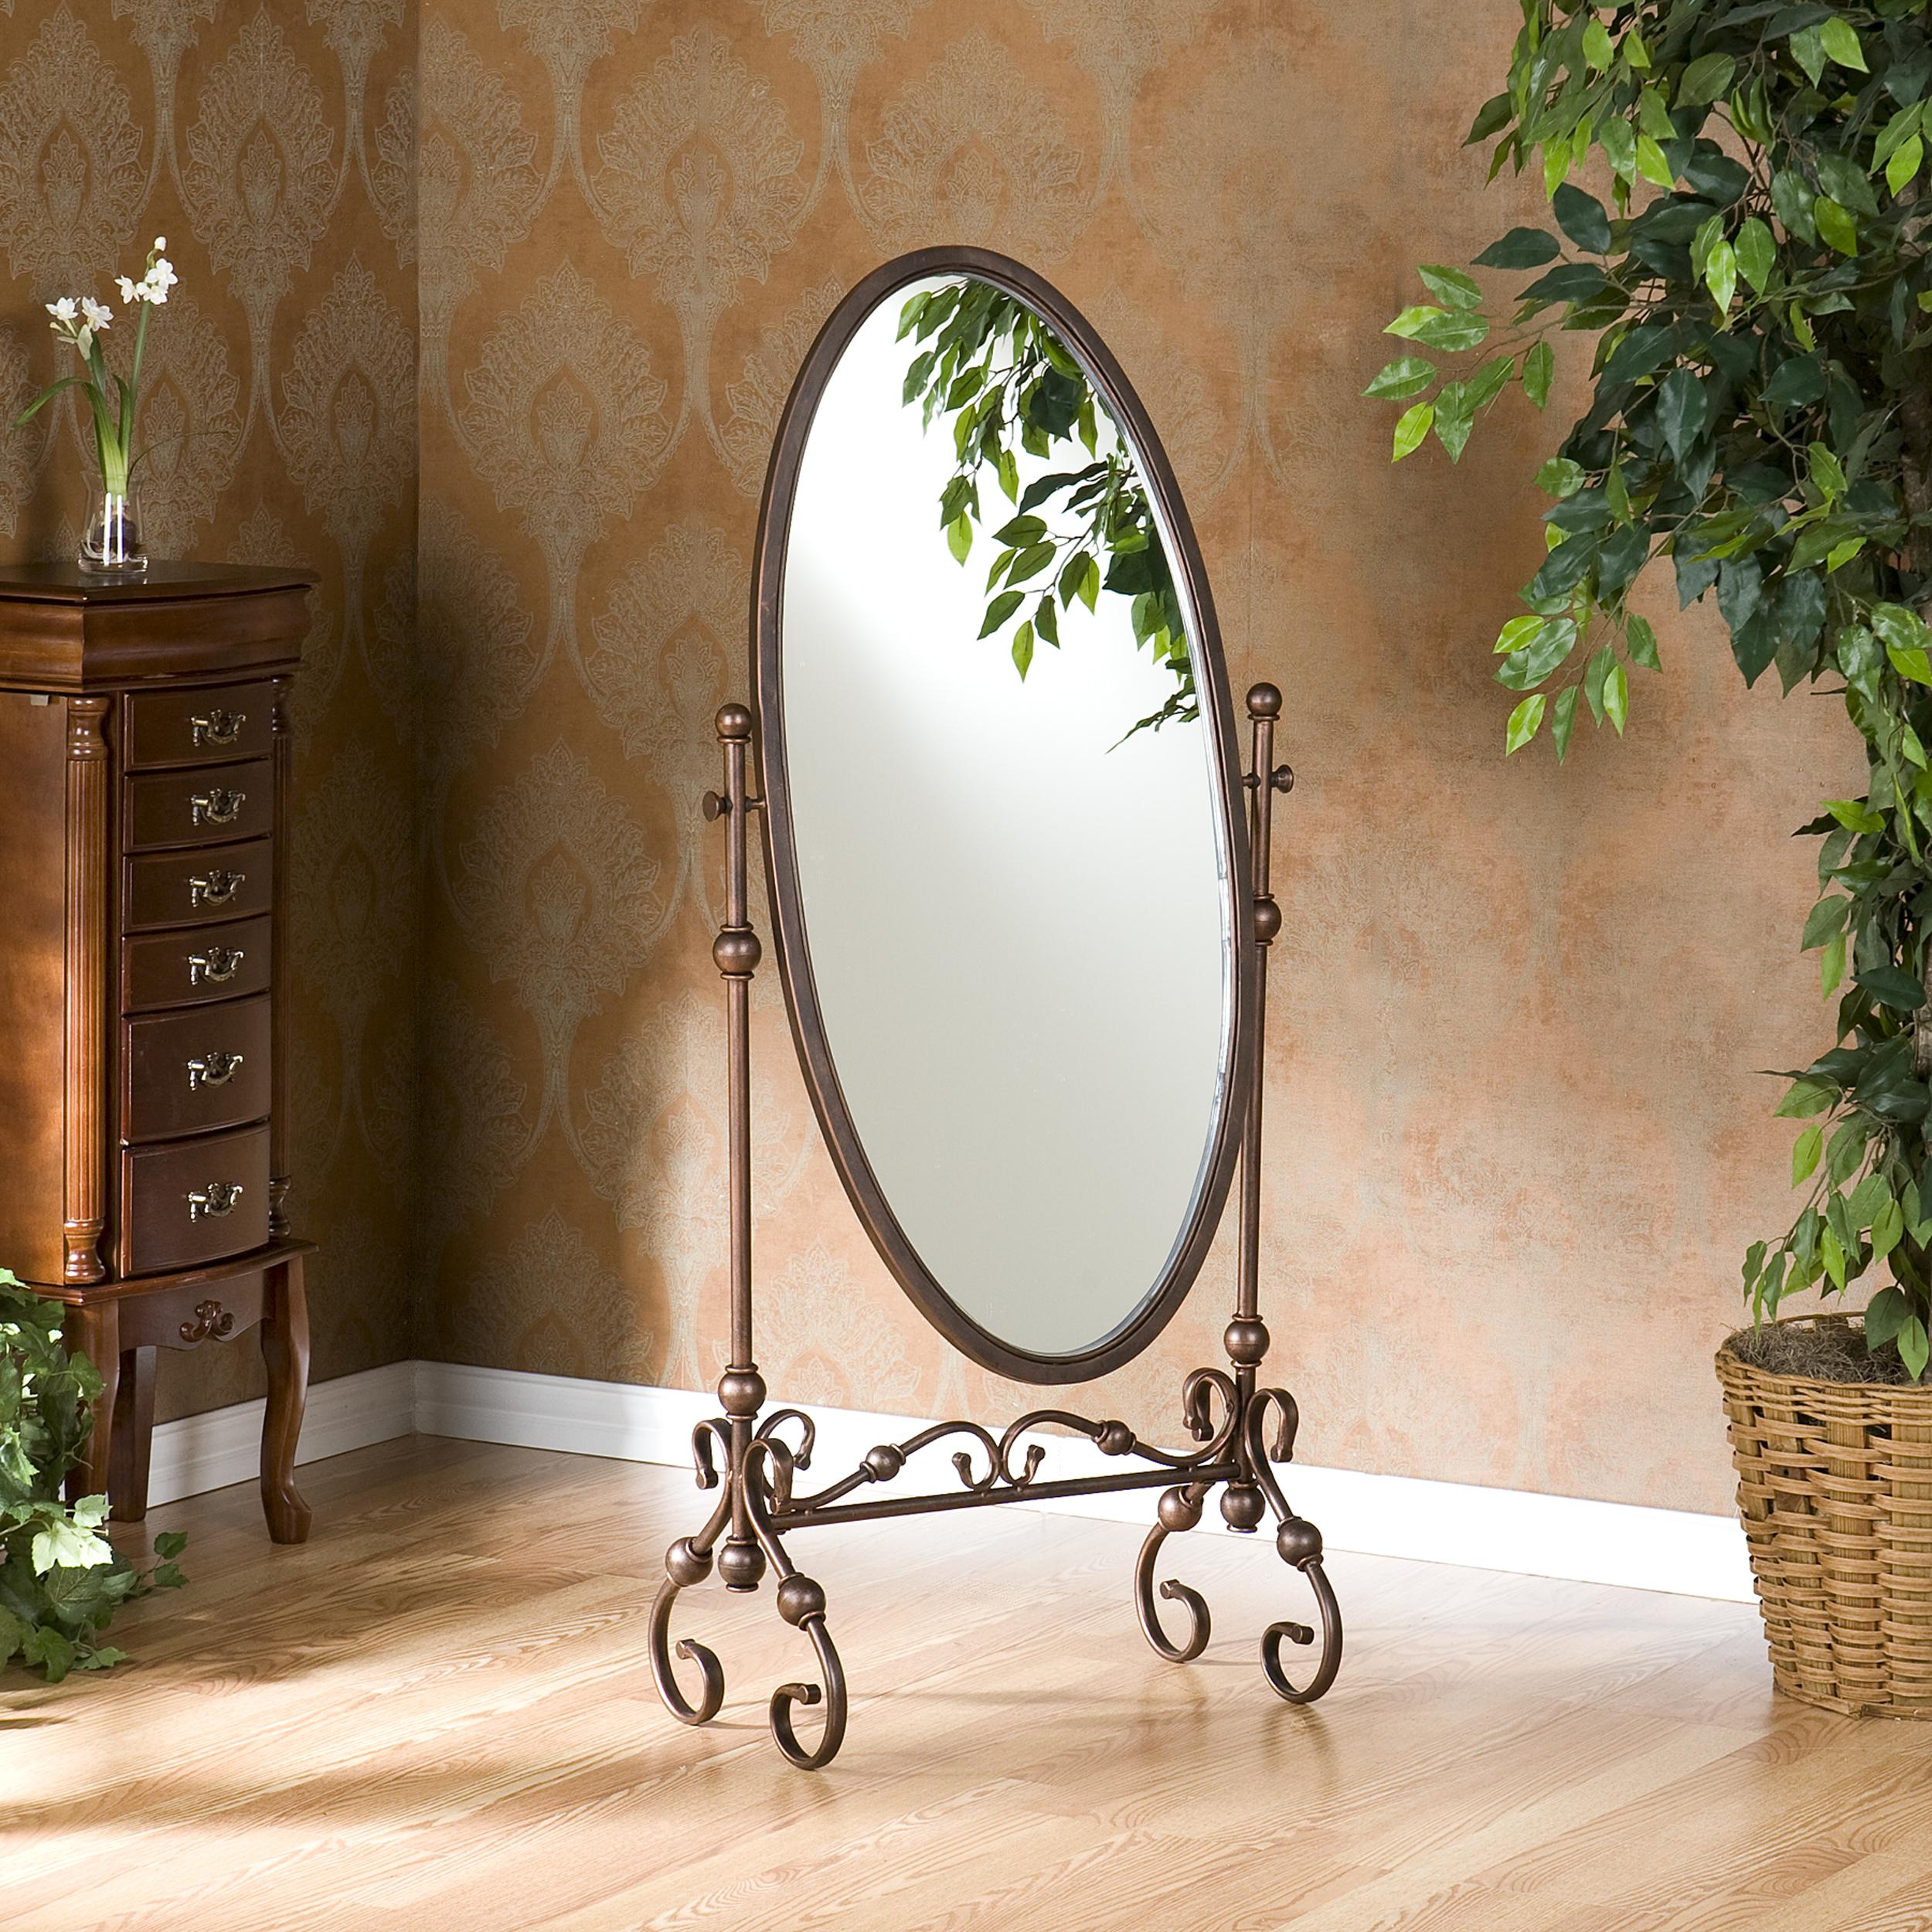 Amazon.com: Southern Enterprises Lourdes Cheval Oval Free Standing ...